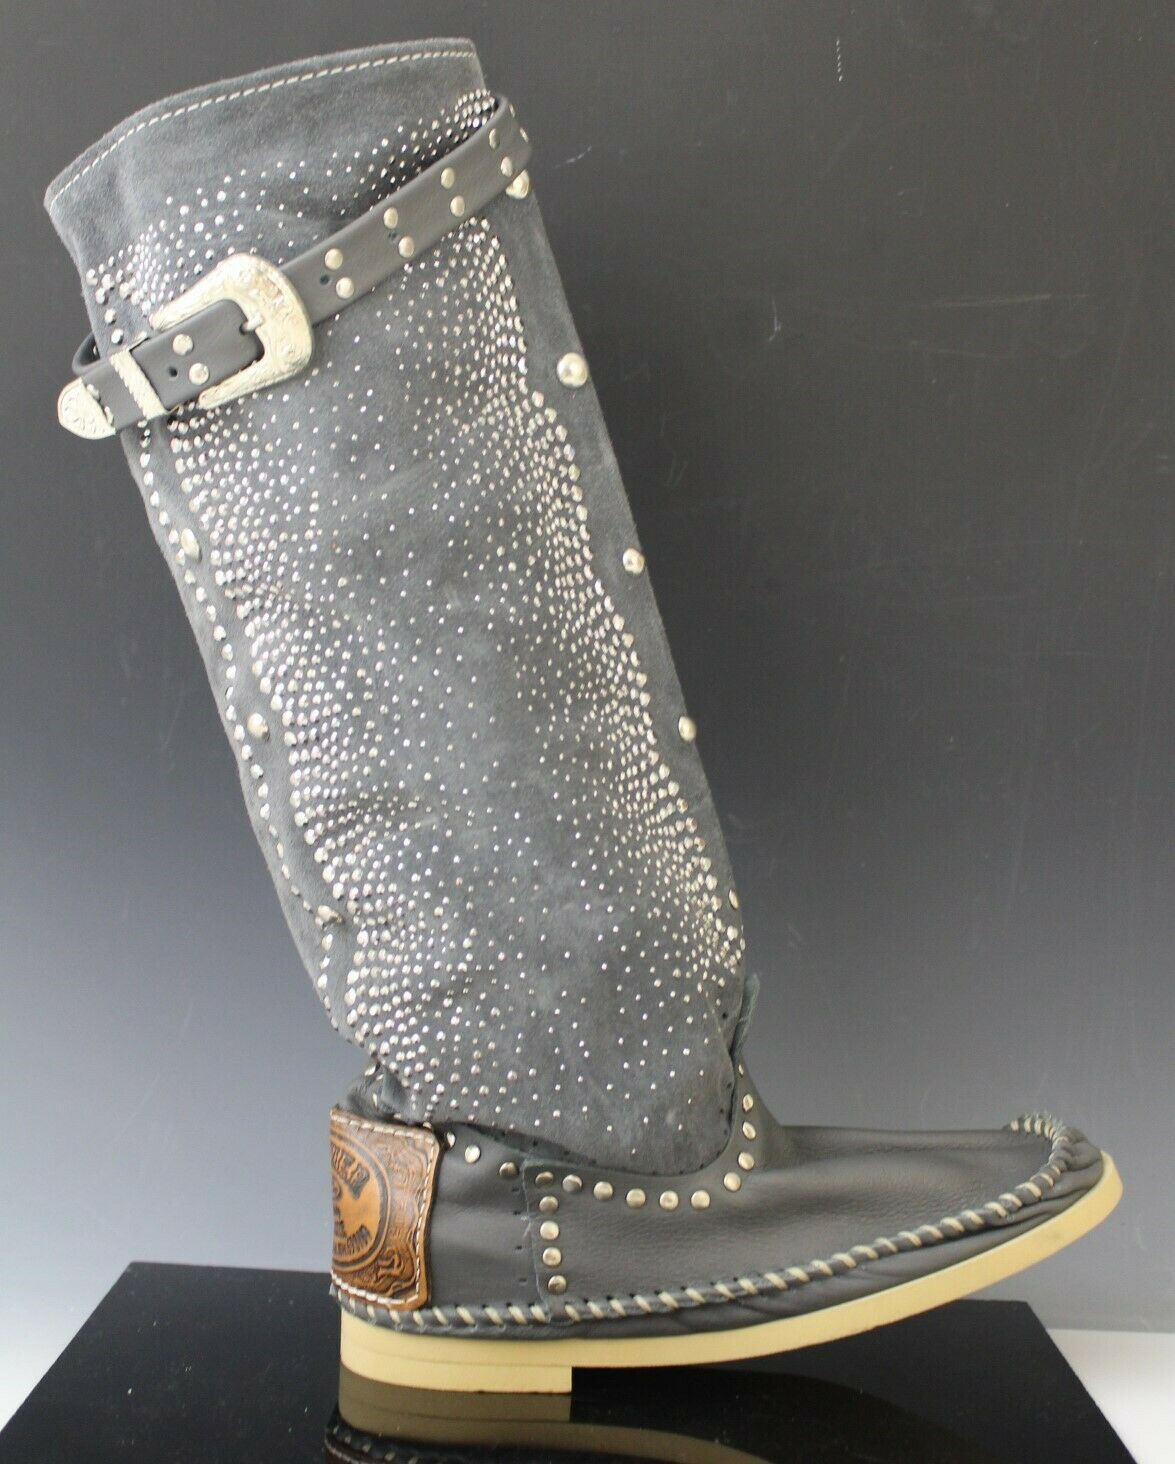 Hector Italian Leather Studded Moccasin Boots shoes Micro Alto Dark Grey US 6